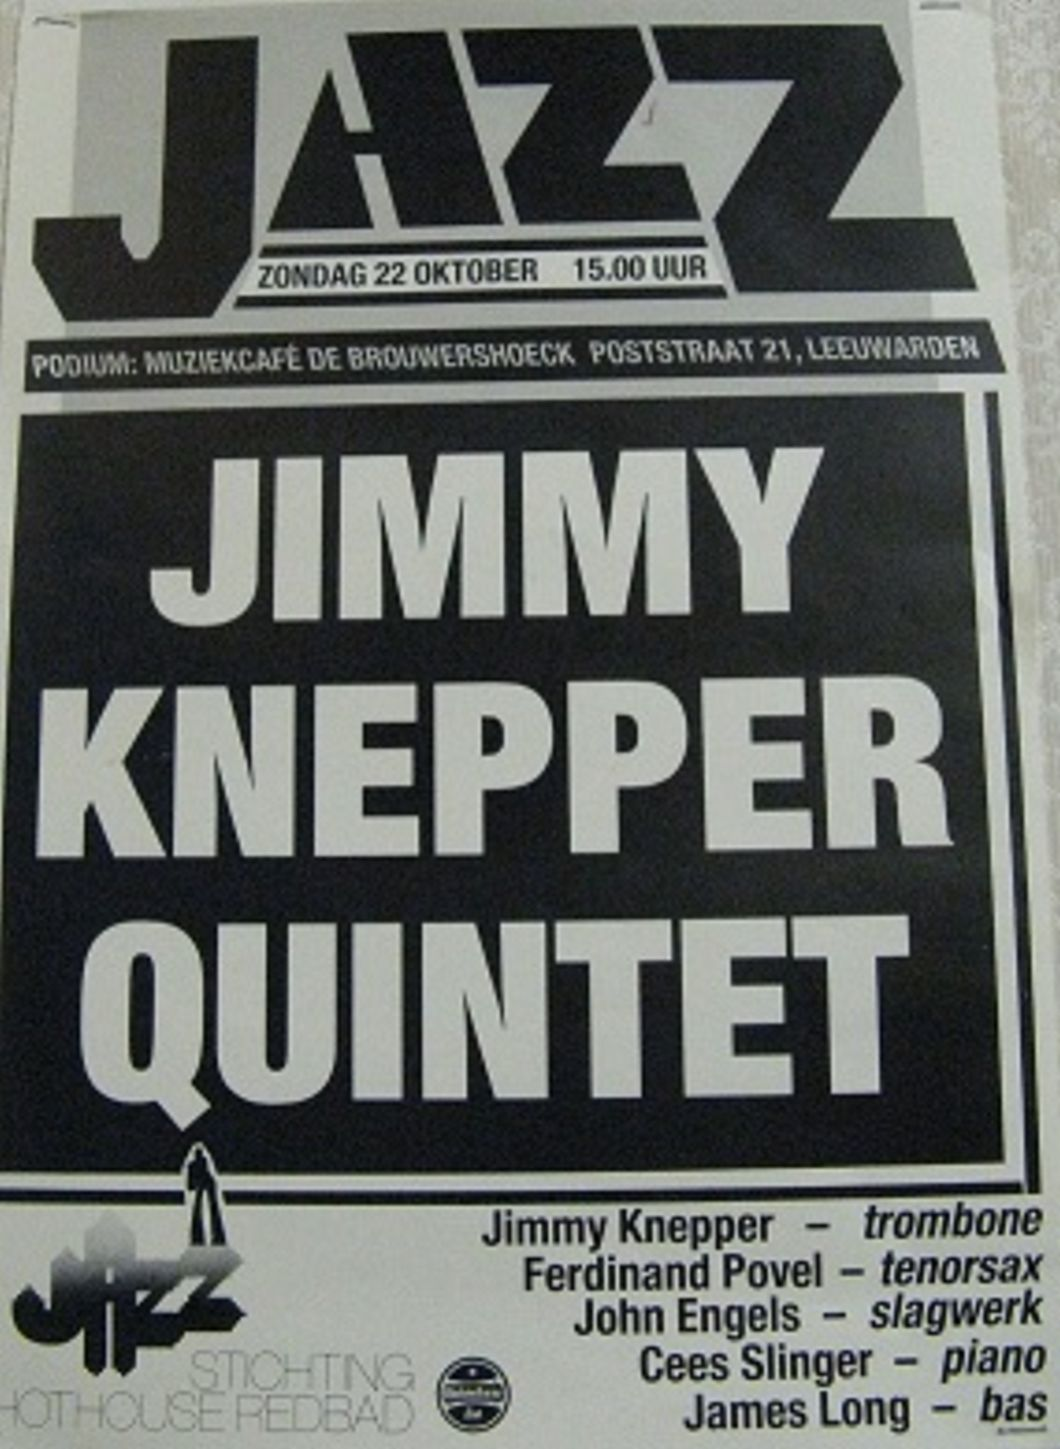 Jimmy Knepper